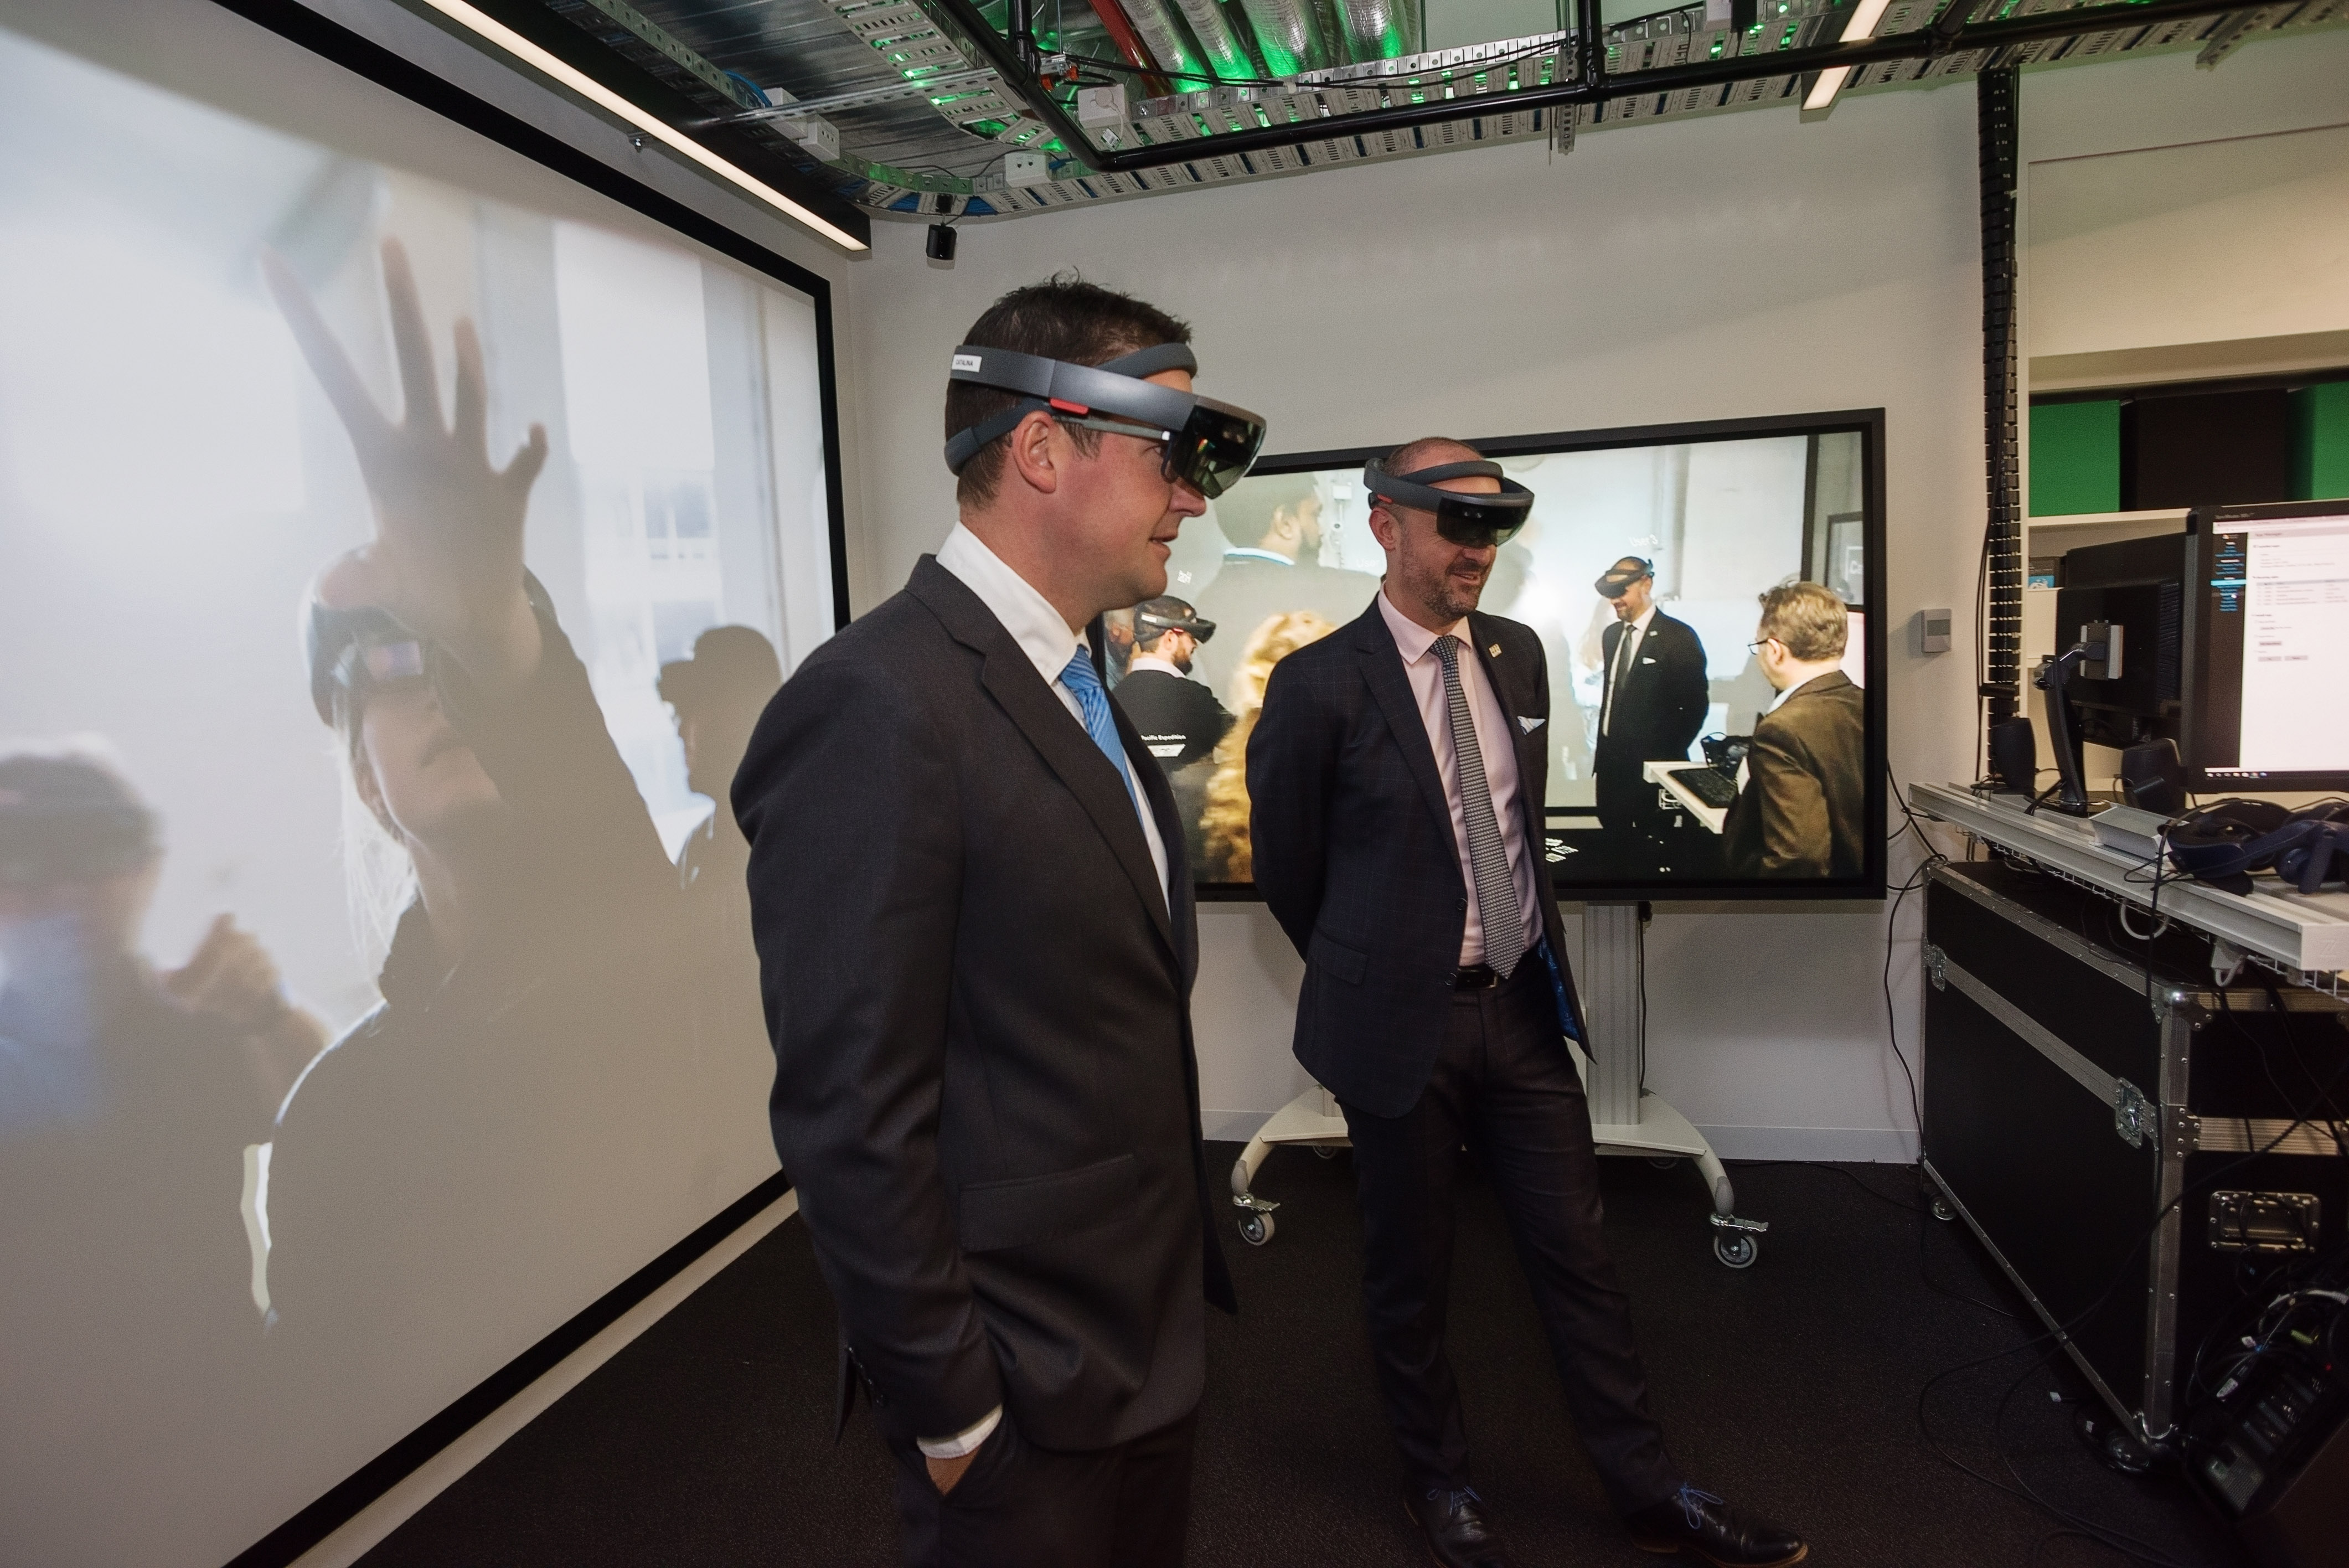 Minister Seselja and Minister Barr with headsets on, using the technology in the Immersive Environments Lab.